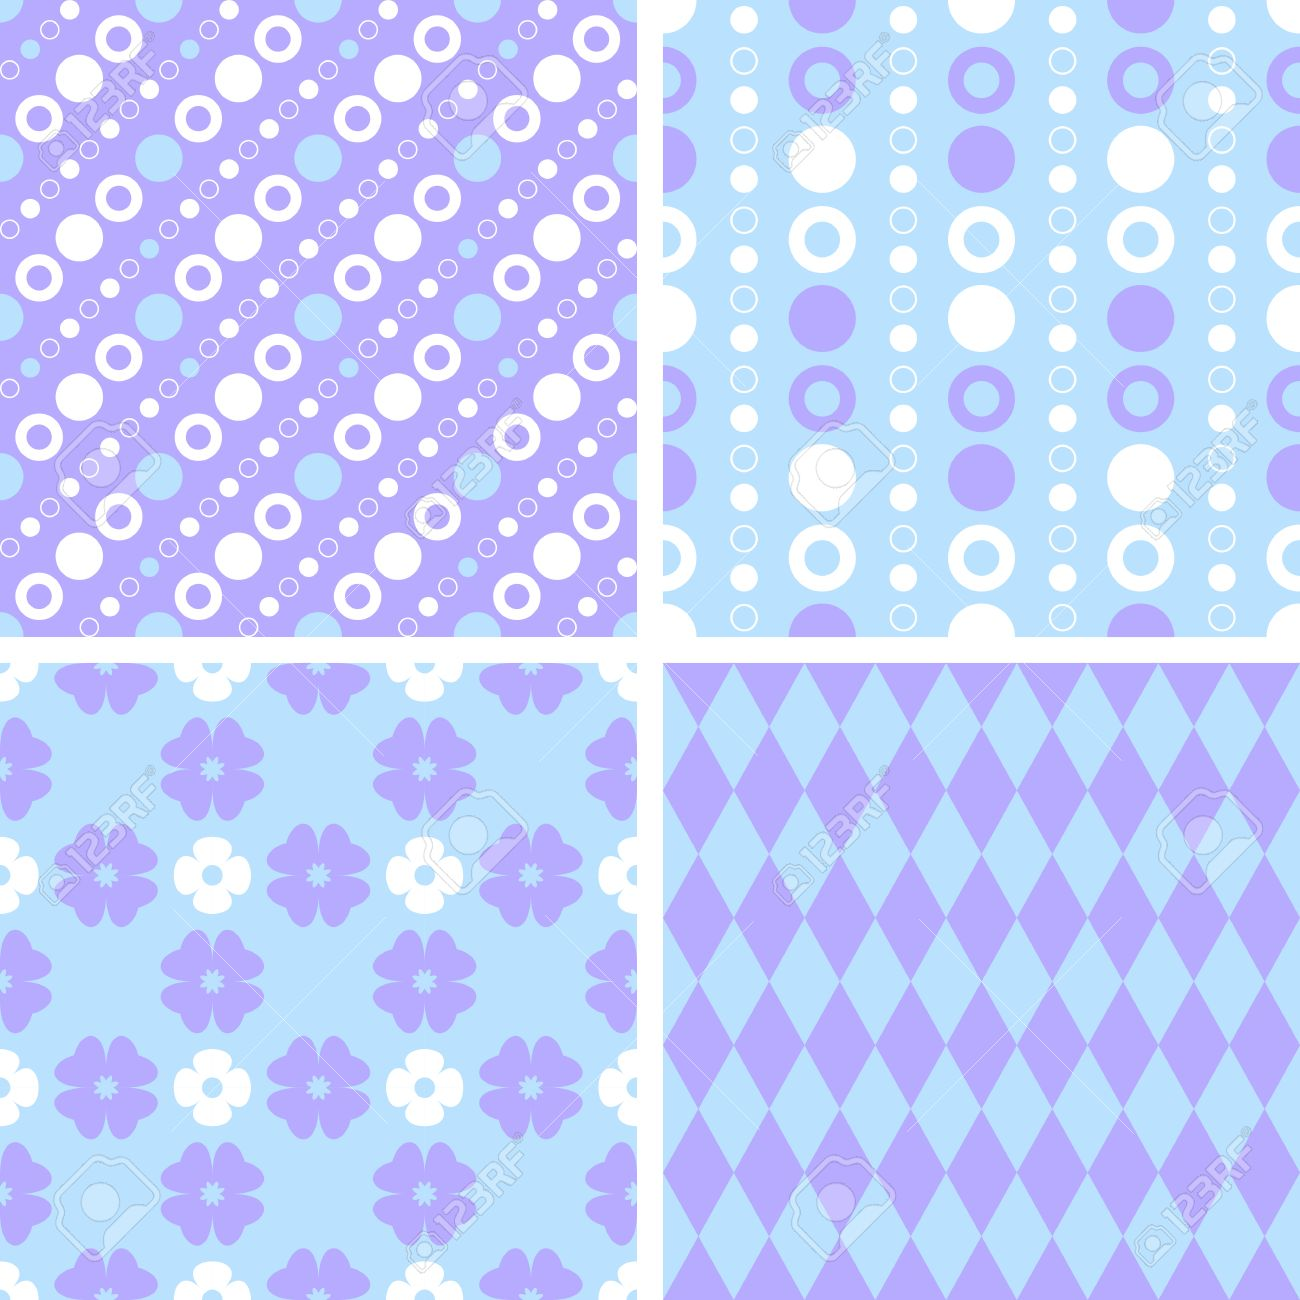 Vector Seamless Tiling Patterns Purple And Blue For Printing